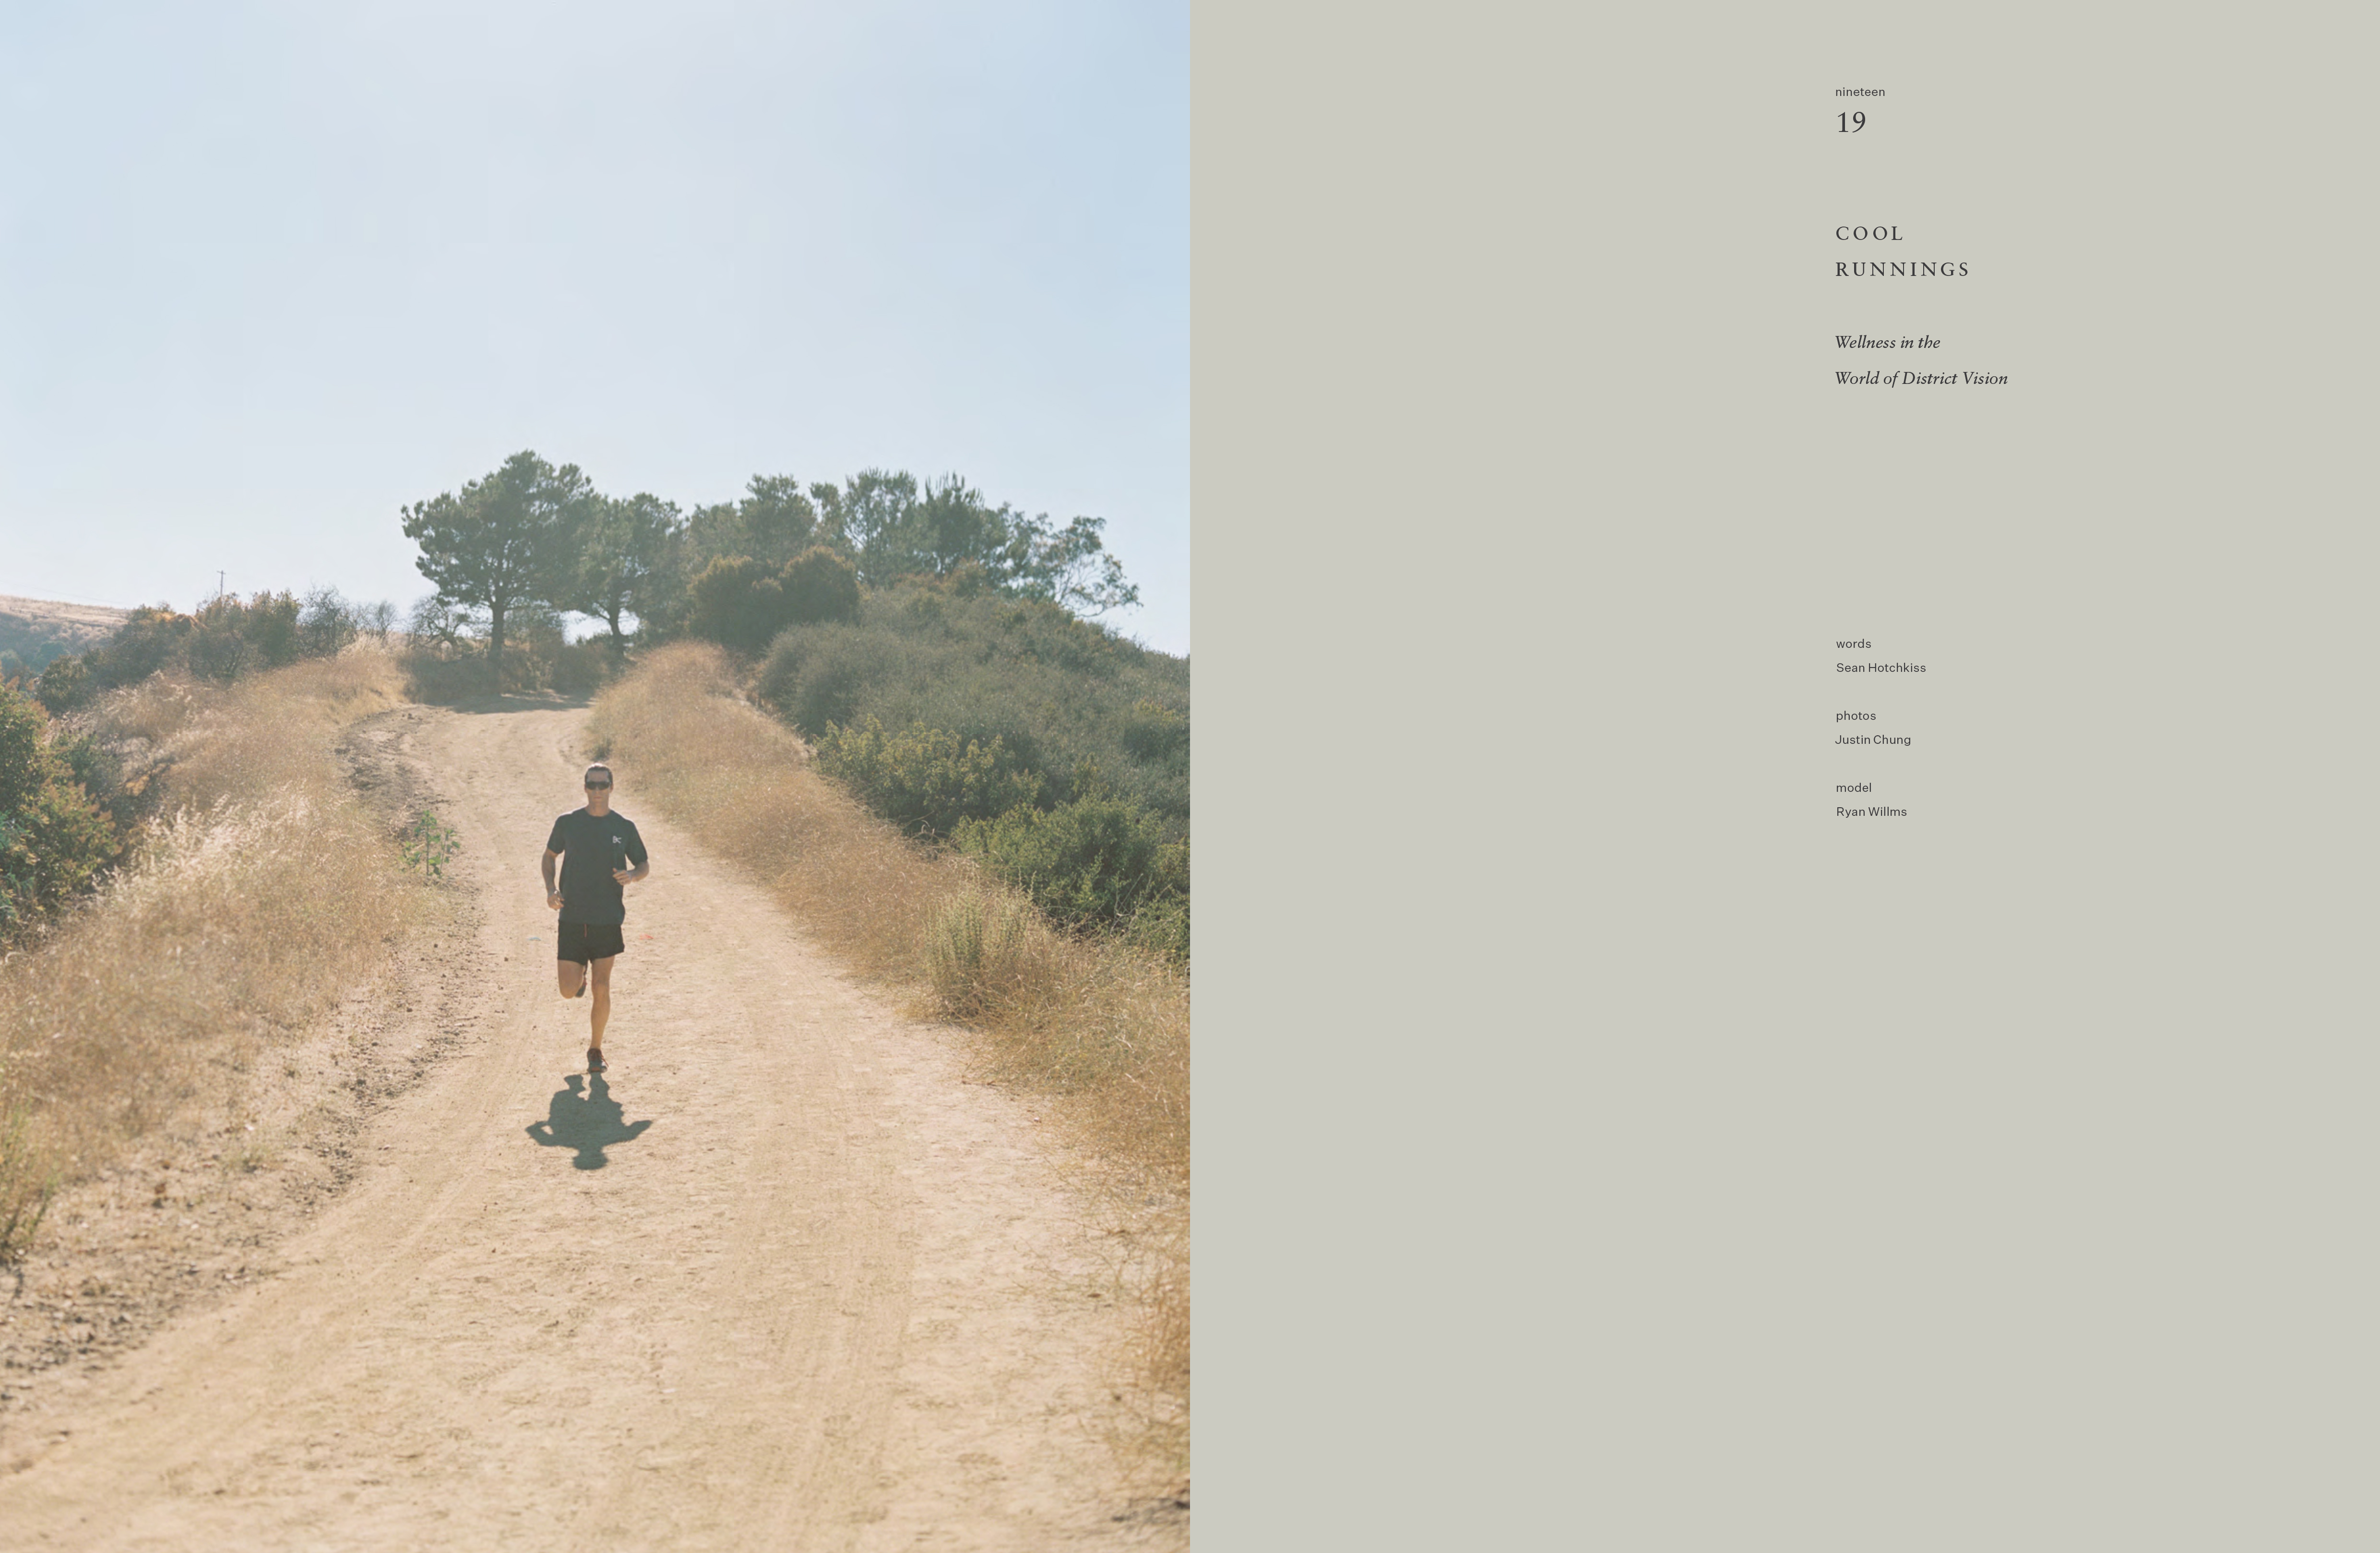 Ryan Willms, Cereal Magazine, District Vision, Justin Chung